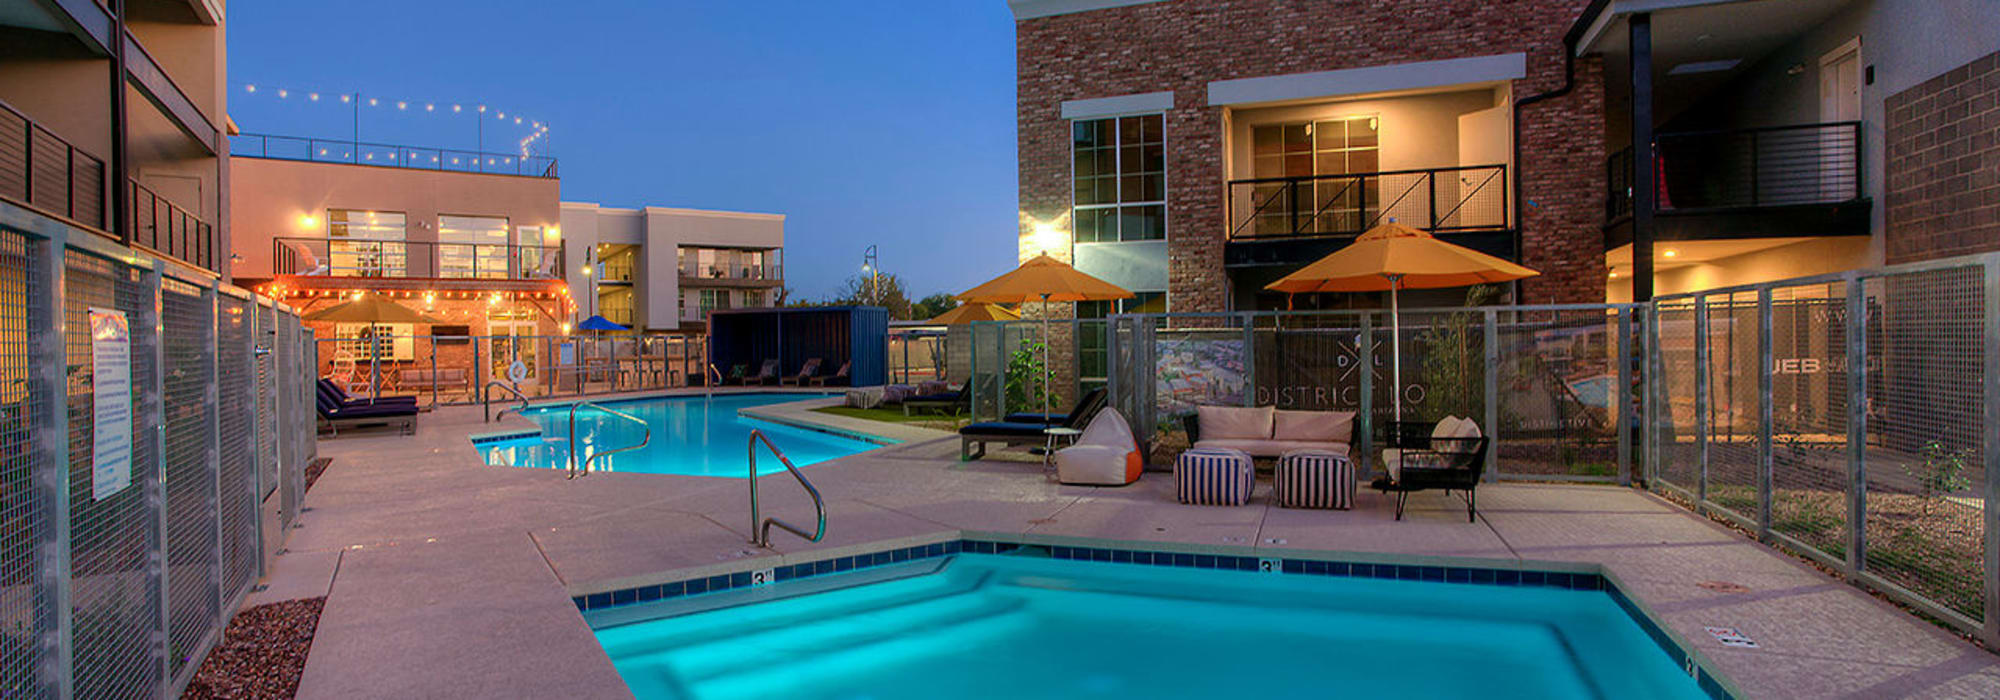 Swimming pool area at dusk at District Lofts in Gilbert, Arizona